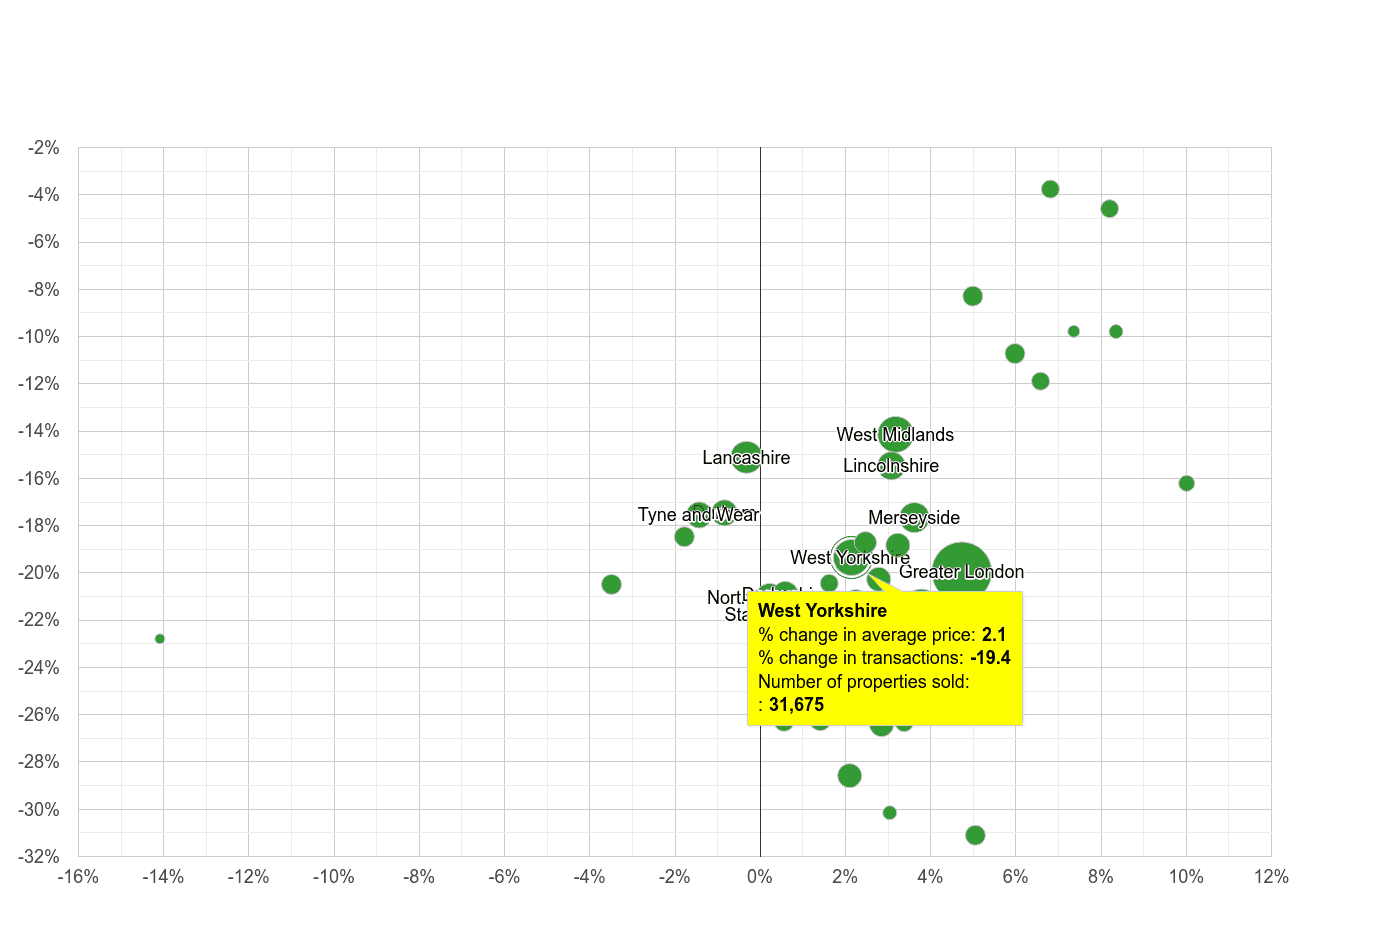 West Yorkshire property price and sales volume change relative to other counties